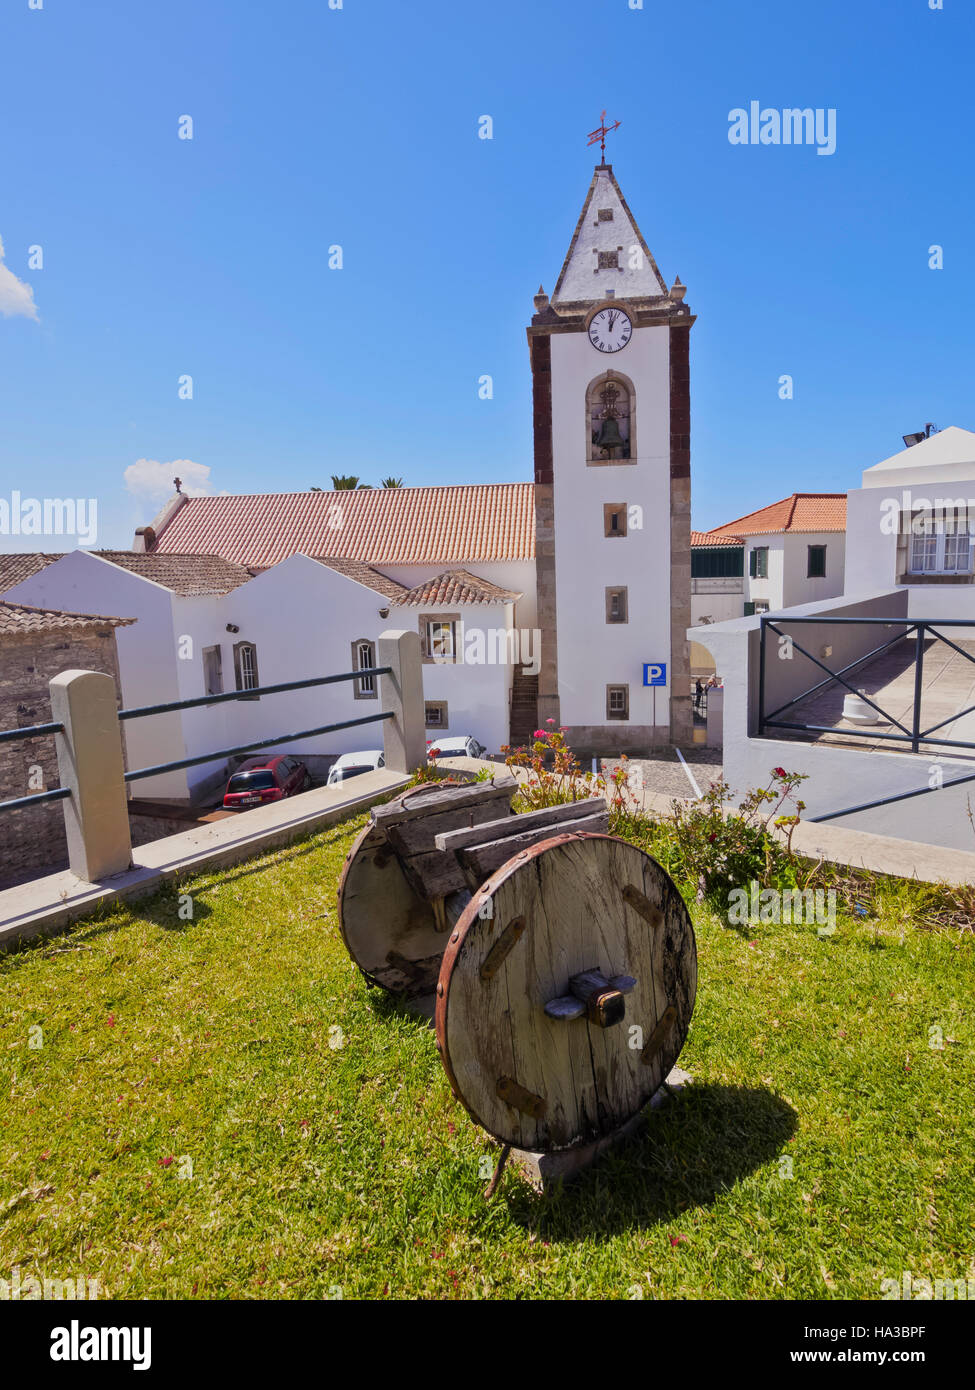 Portugal, Madeira Islands, Porto Santo, Vila Baleira, View of the Church Nossa Senhora da Piedade. - Stock Image